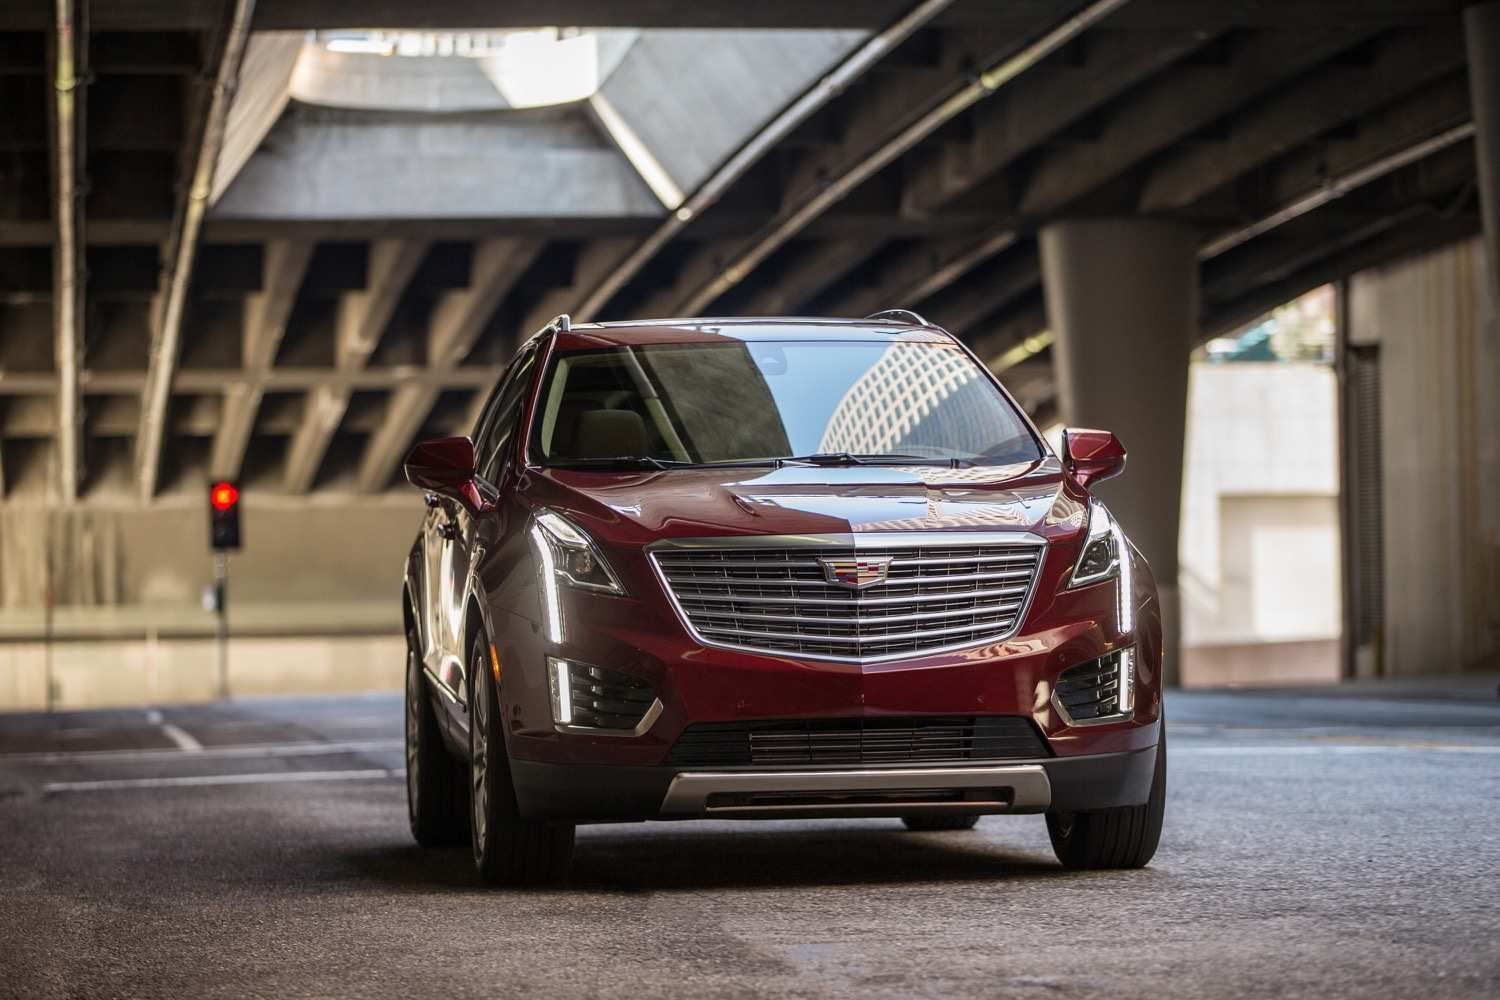 49 The 2020 Cadillac XT5 First Drive